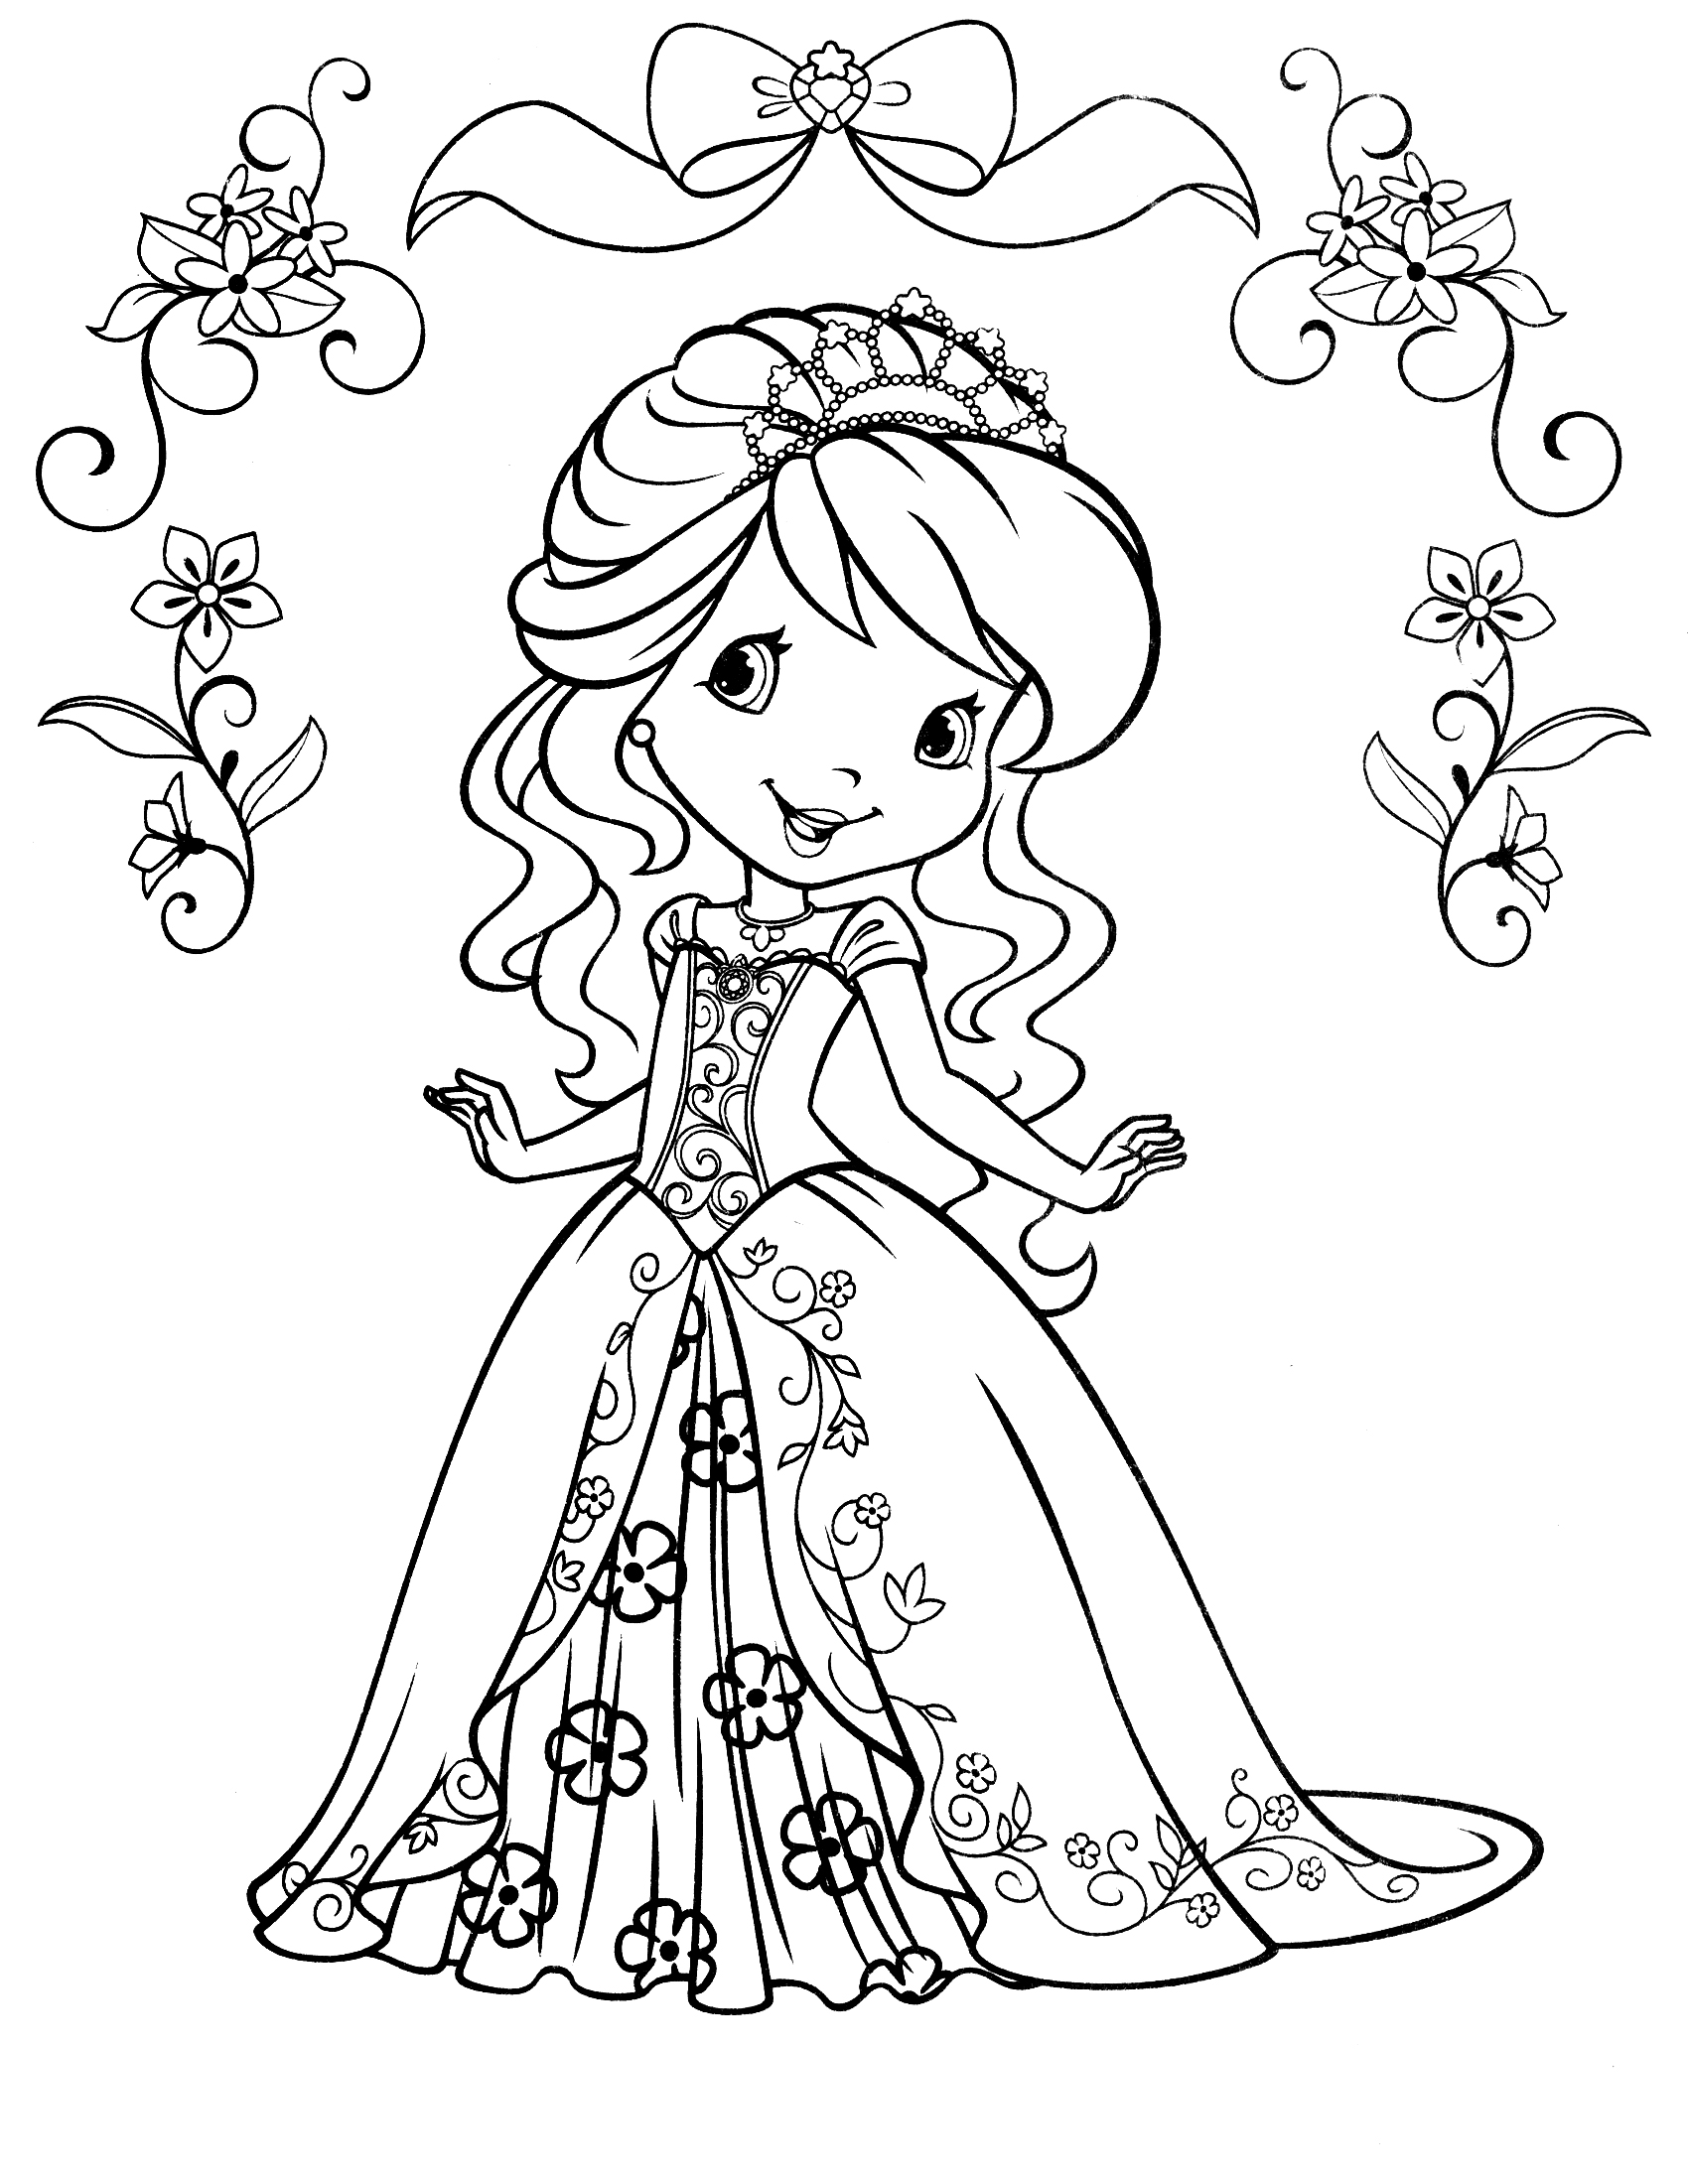 kids coloring pages strawberry-shortcake,printable,coloring pages